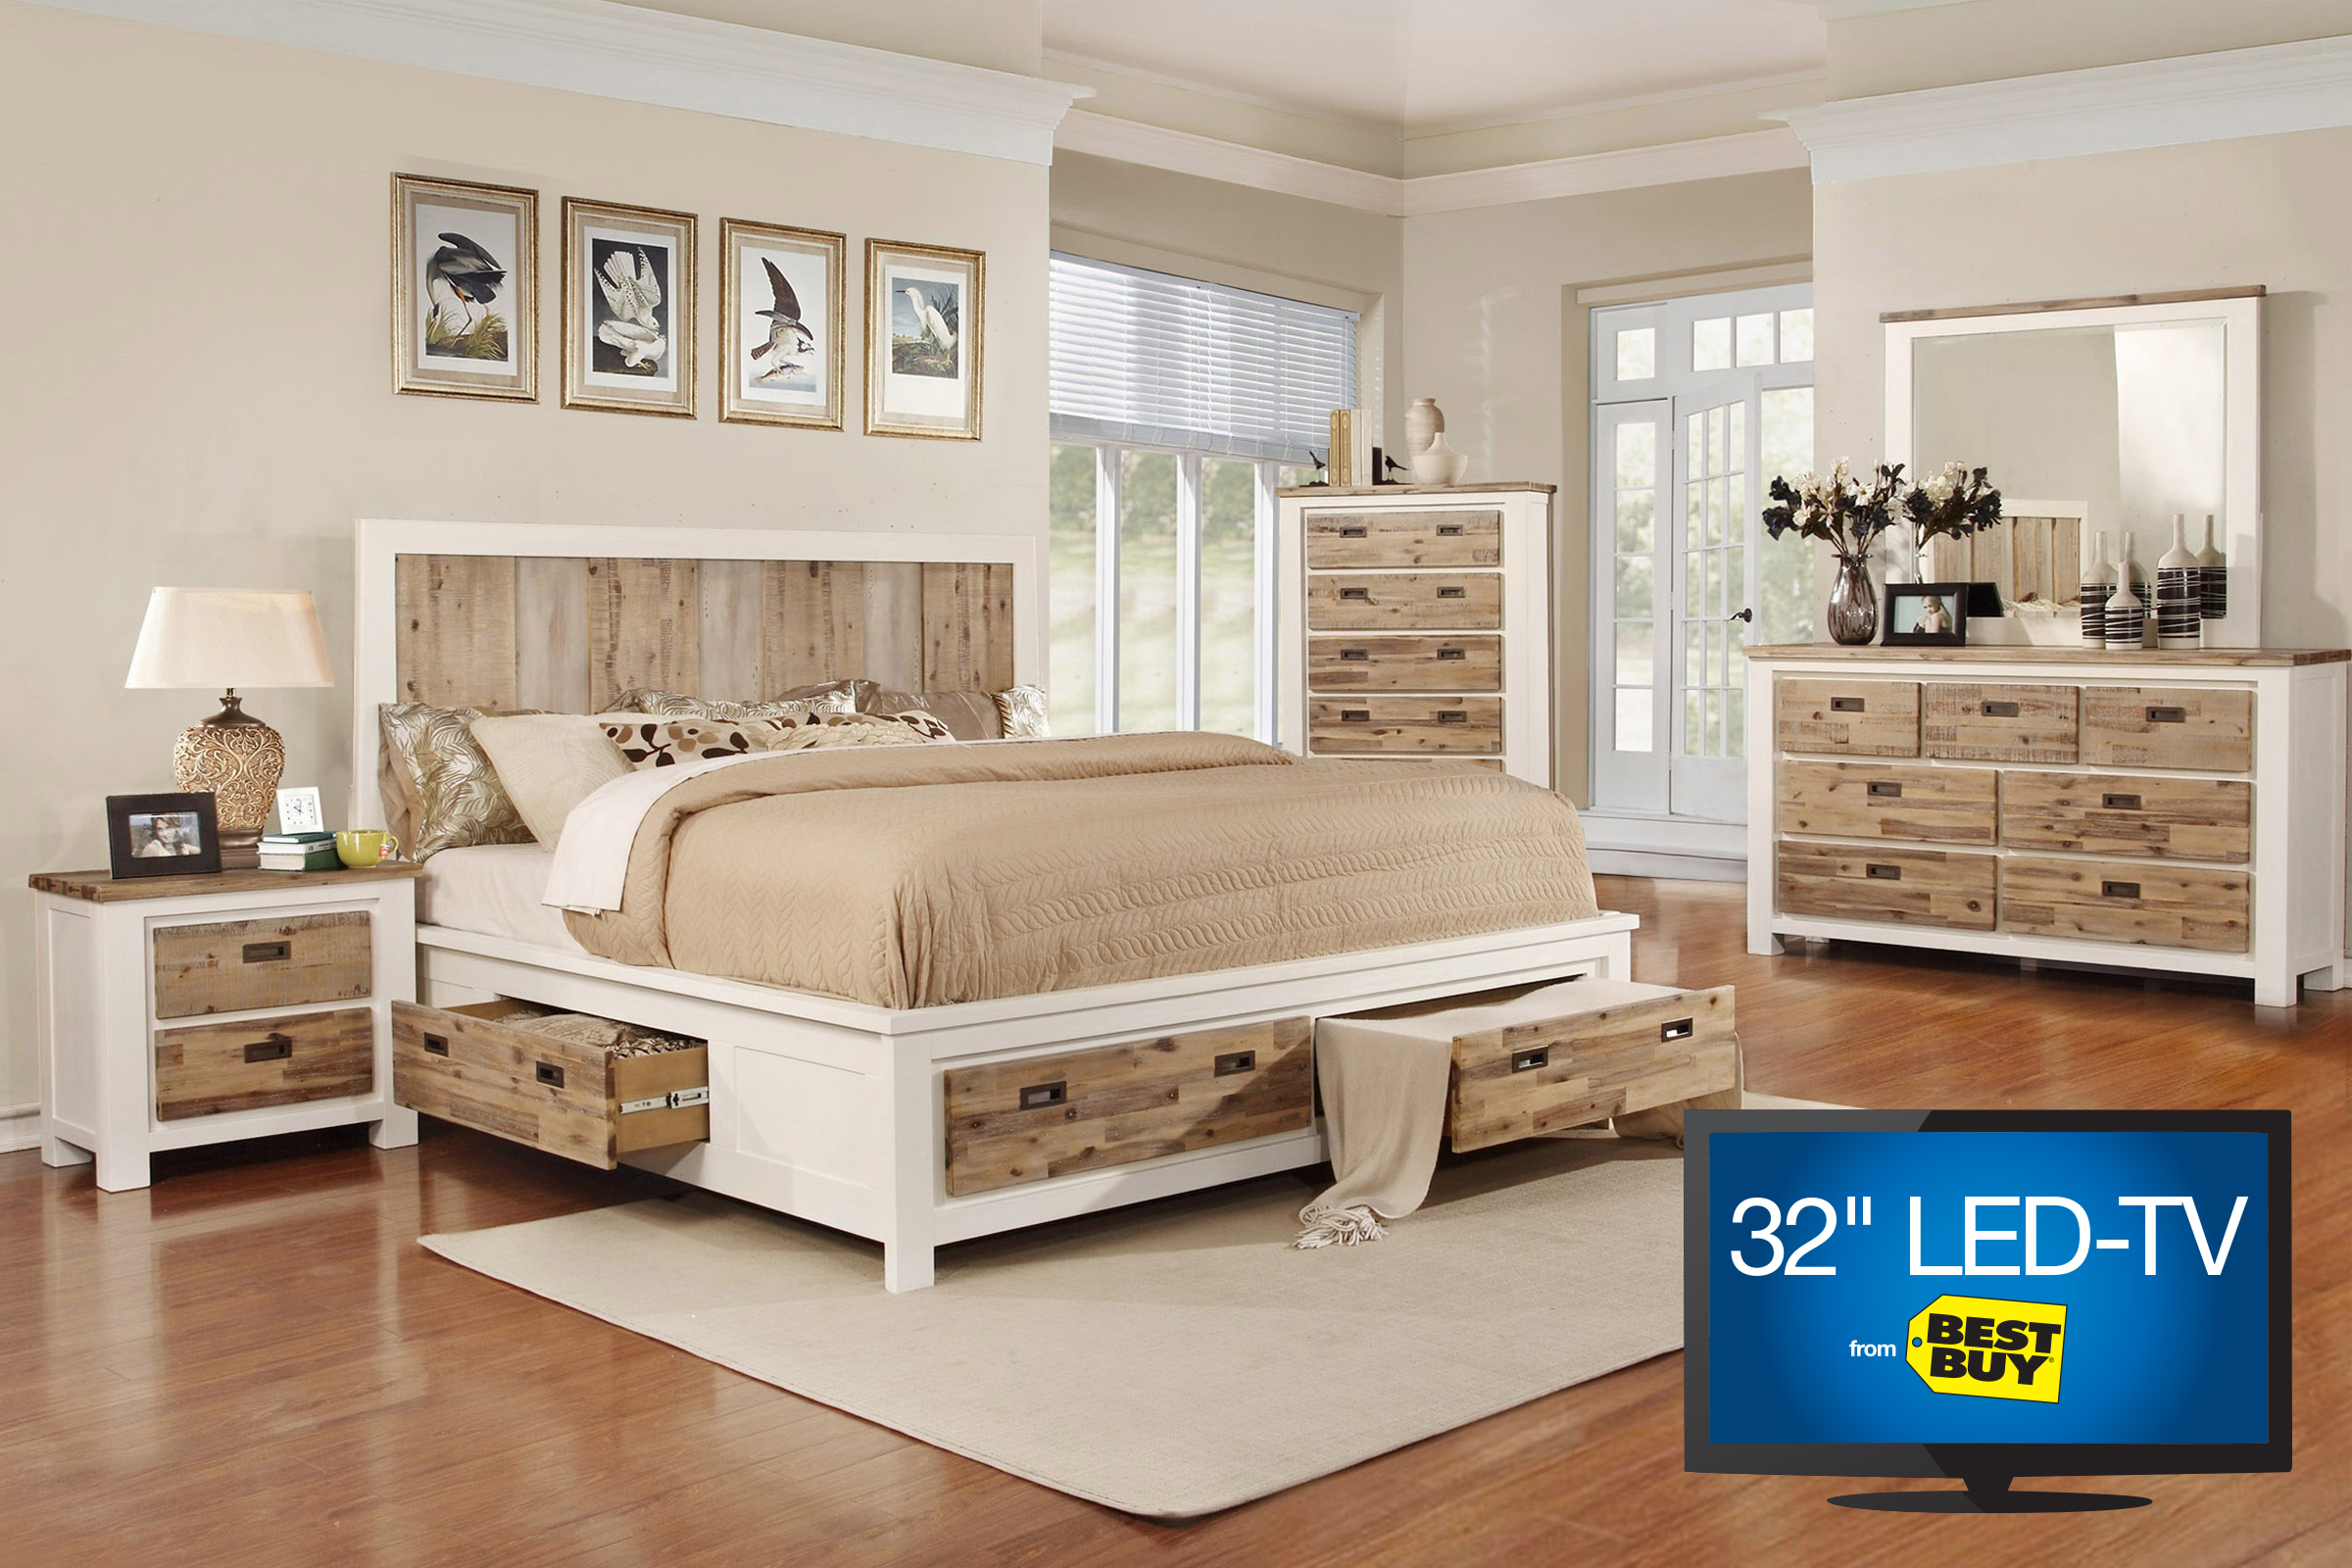 60821 bedroom set bed king. tagmonkey.co